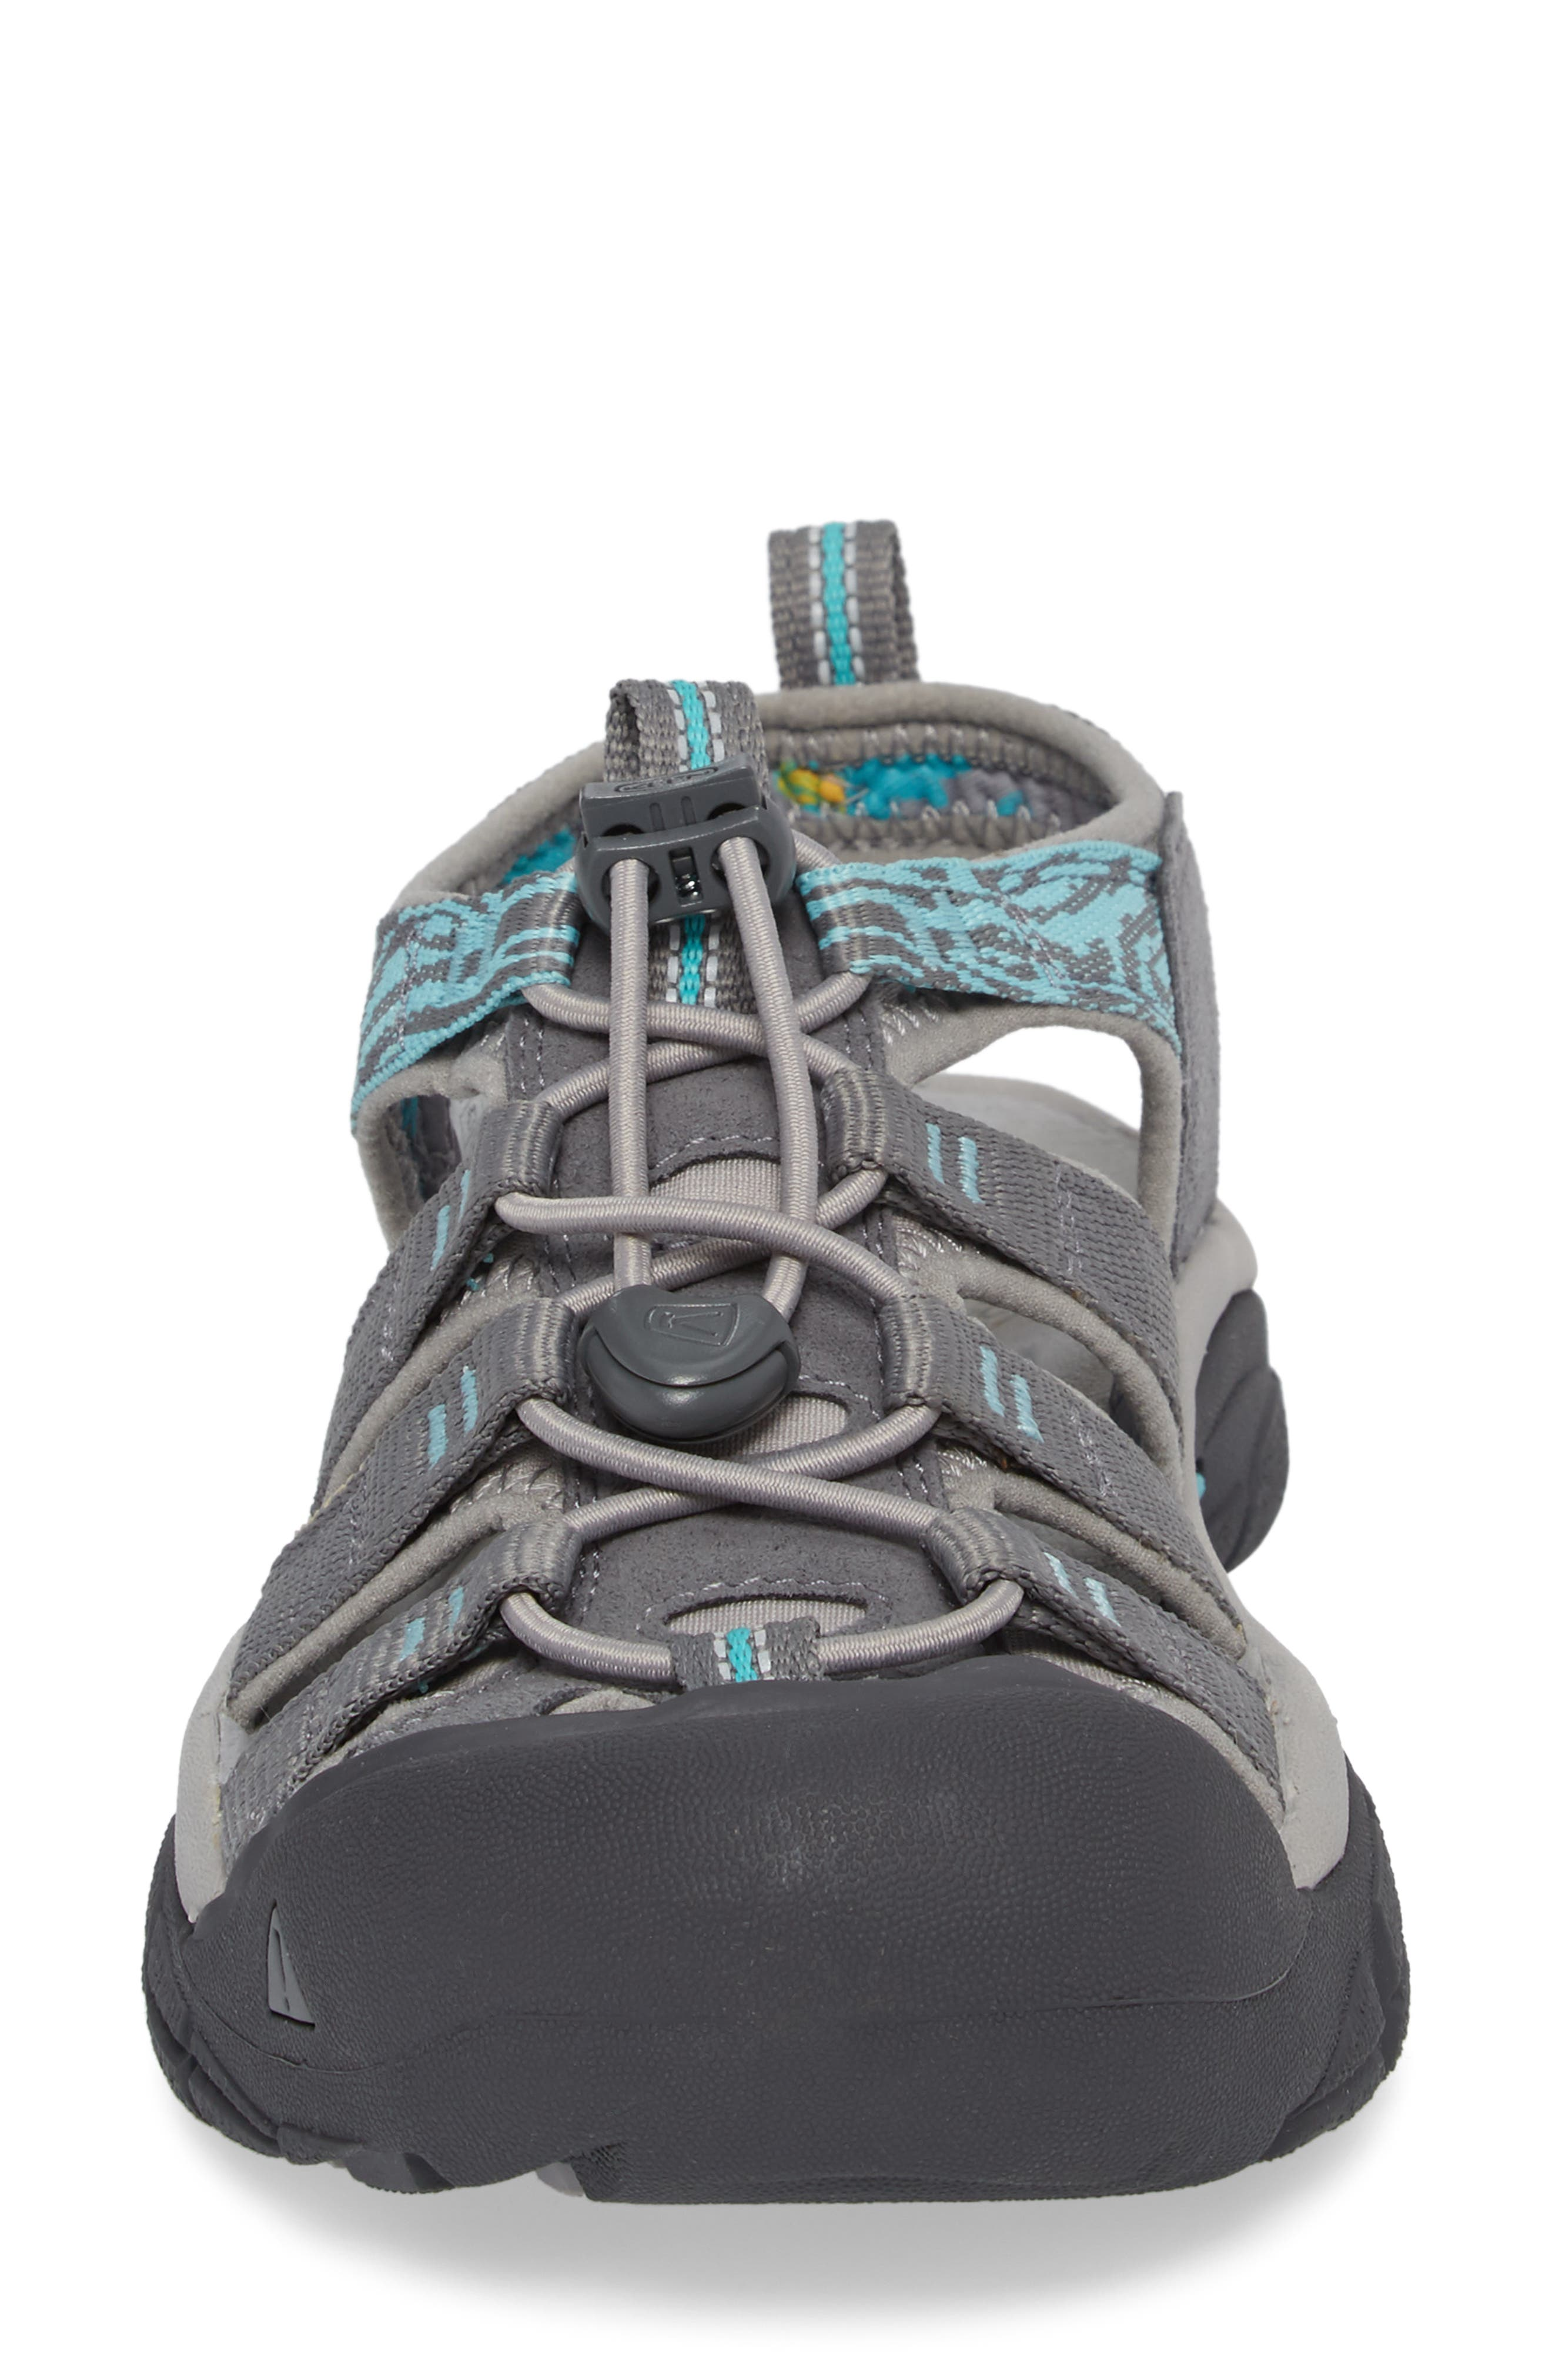 Newport Hydro Sandal,                             Alternate thumbnail 4, color,                             Steel Grey/ Blue Turquoise